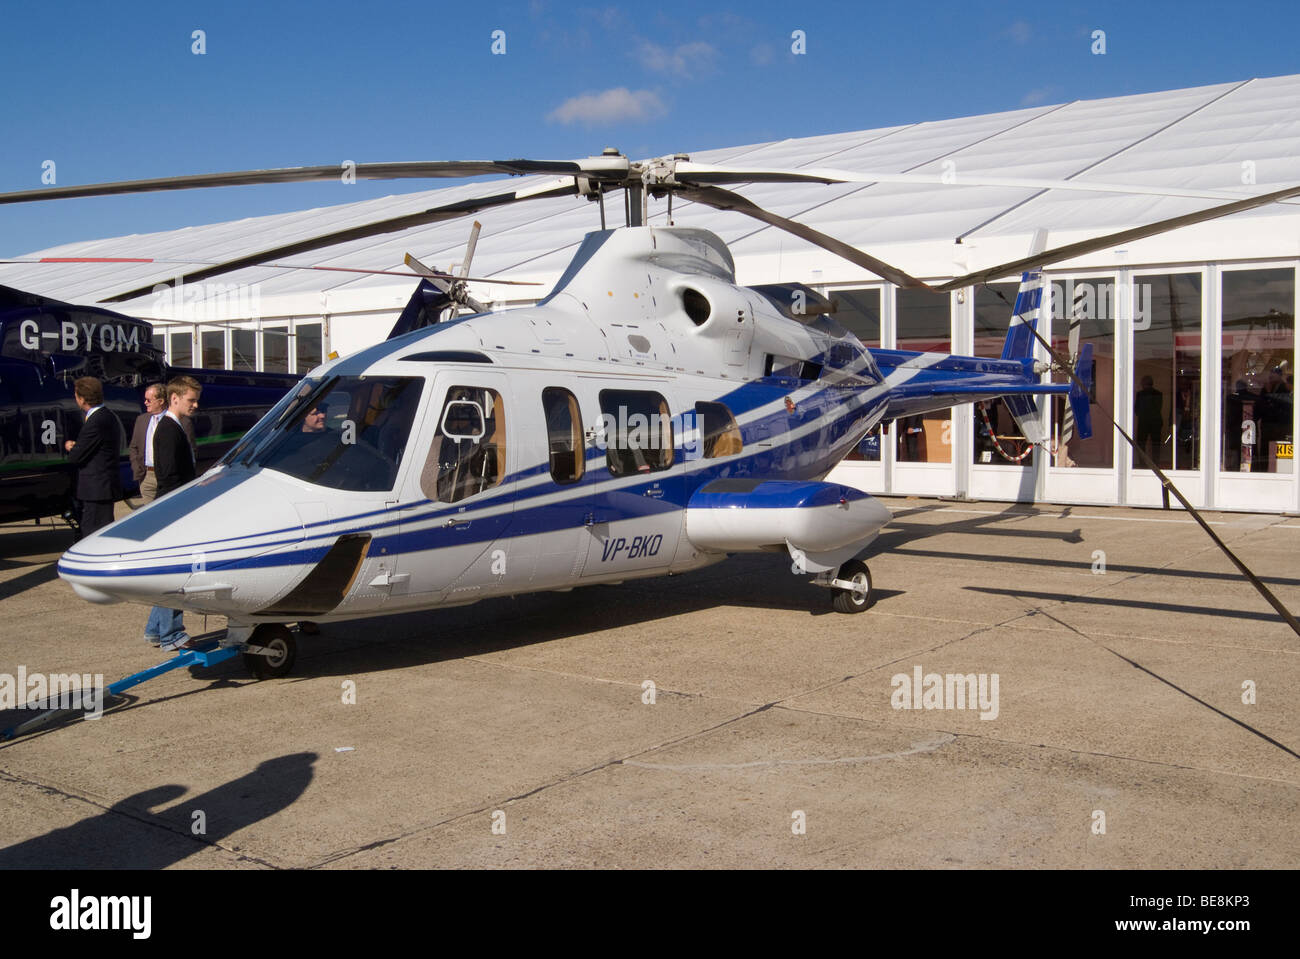 Trade Stands Duxford : Bell helicopters helicopter vp bkq at helitech trade